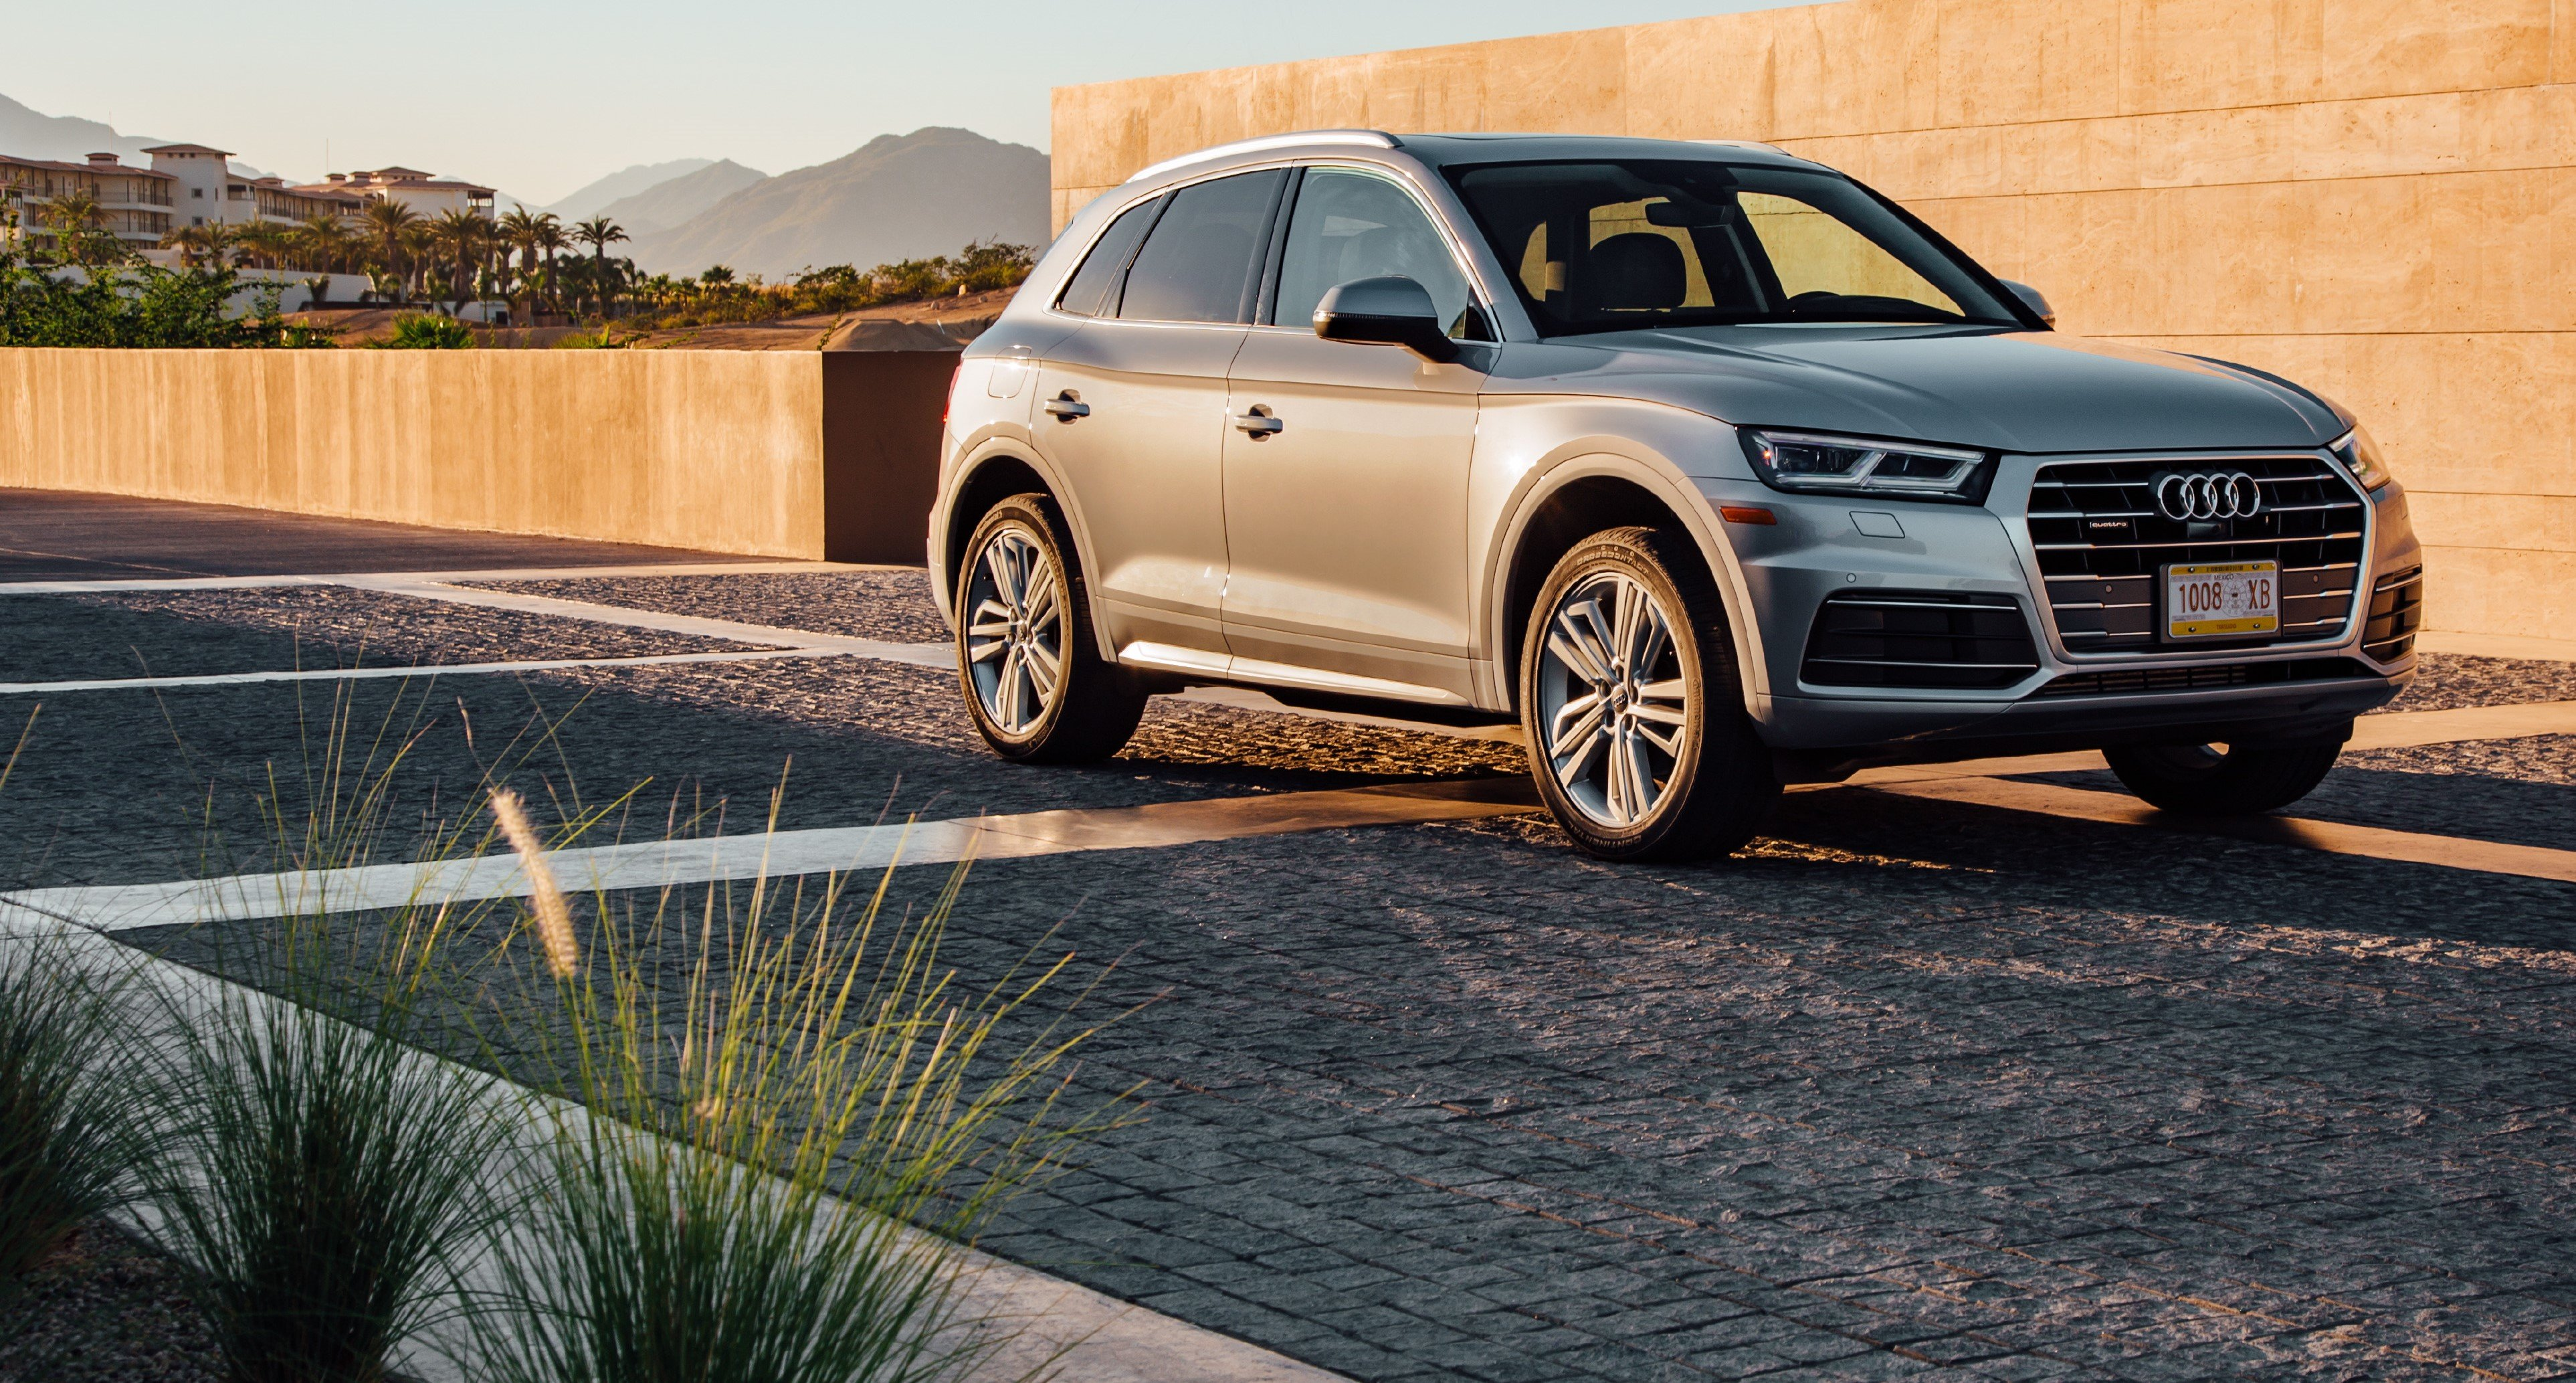 Audi Q5 Price & Lease Offers - Torrance CA